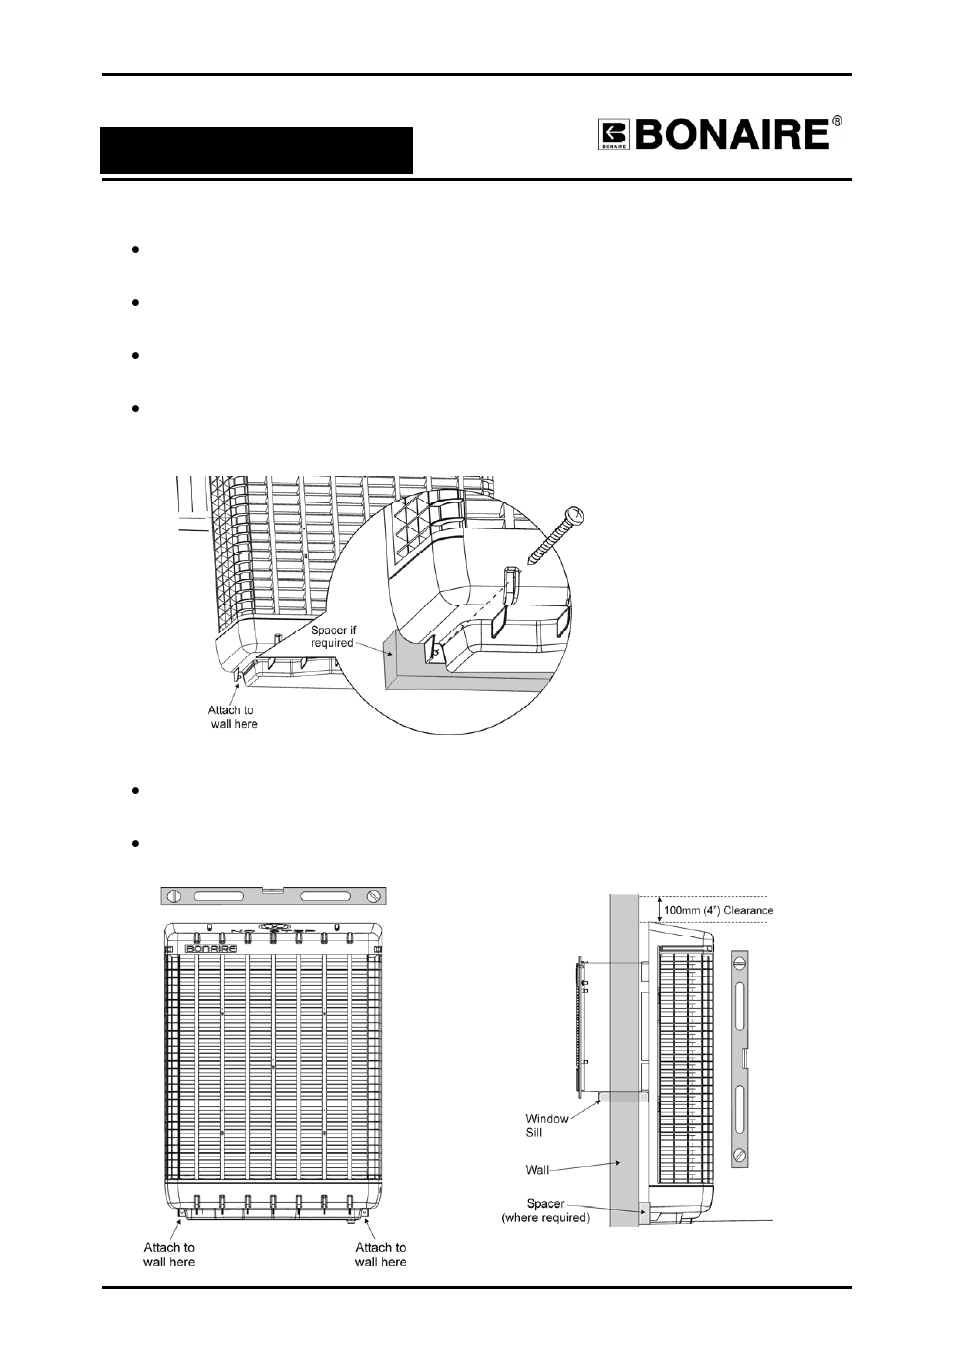 External fixing of the unit, Installation | Bonaire Durango Window Cooler  User Manual | Page